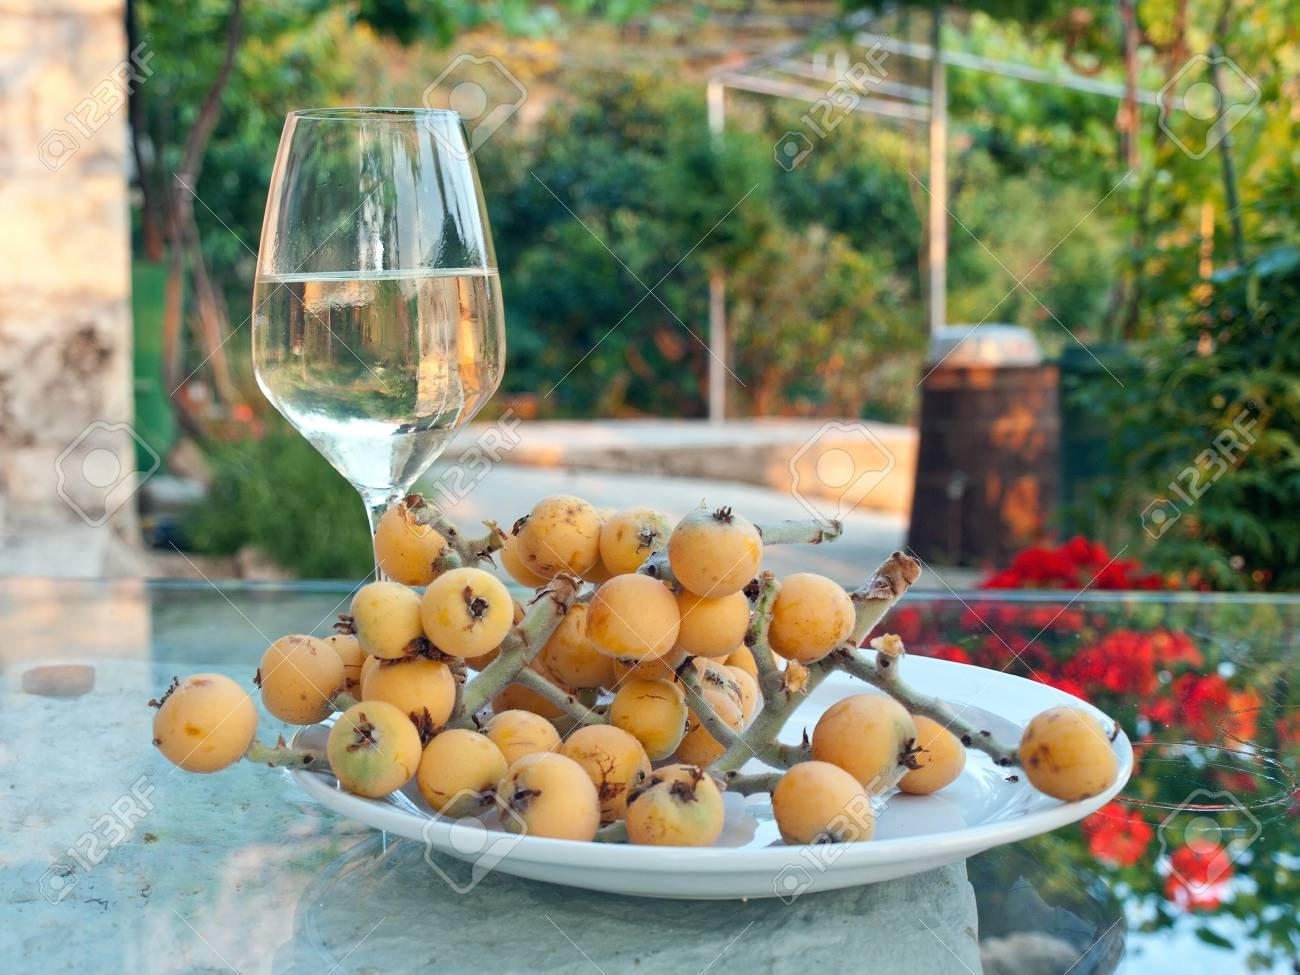 Glass of white wine with traditional mediterranean fruit - 12977385